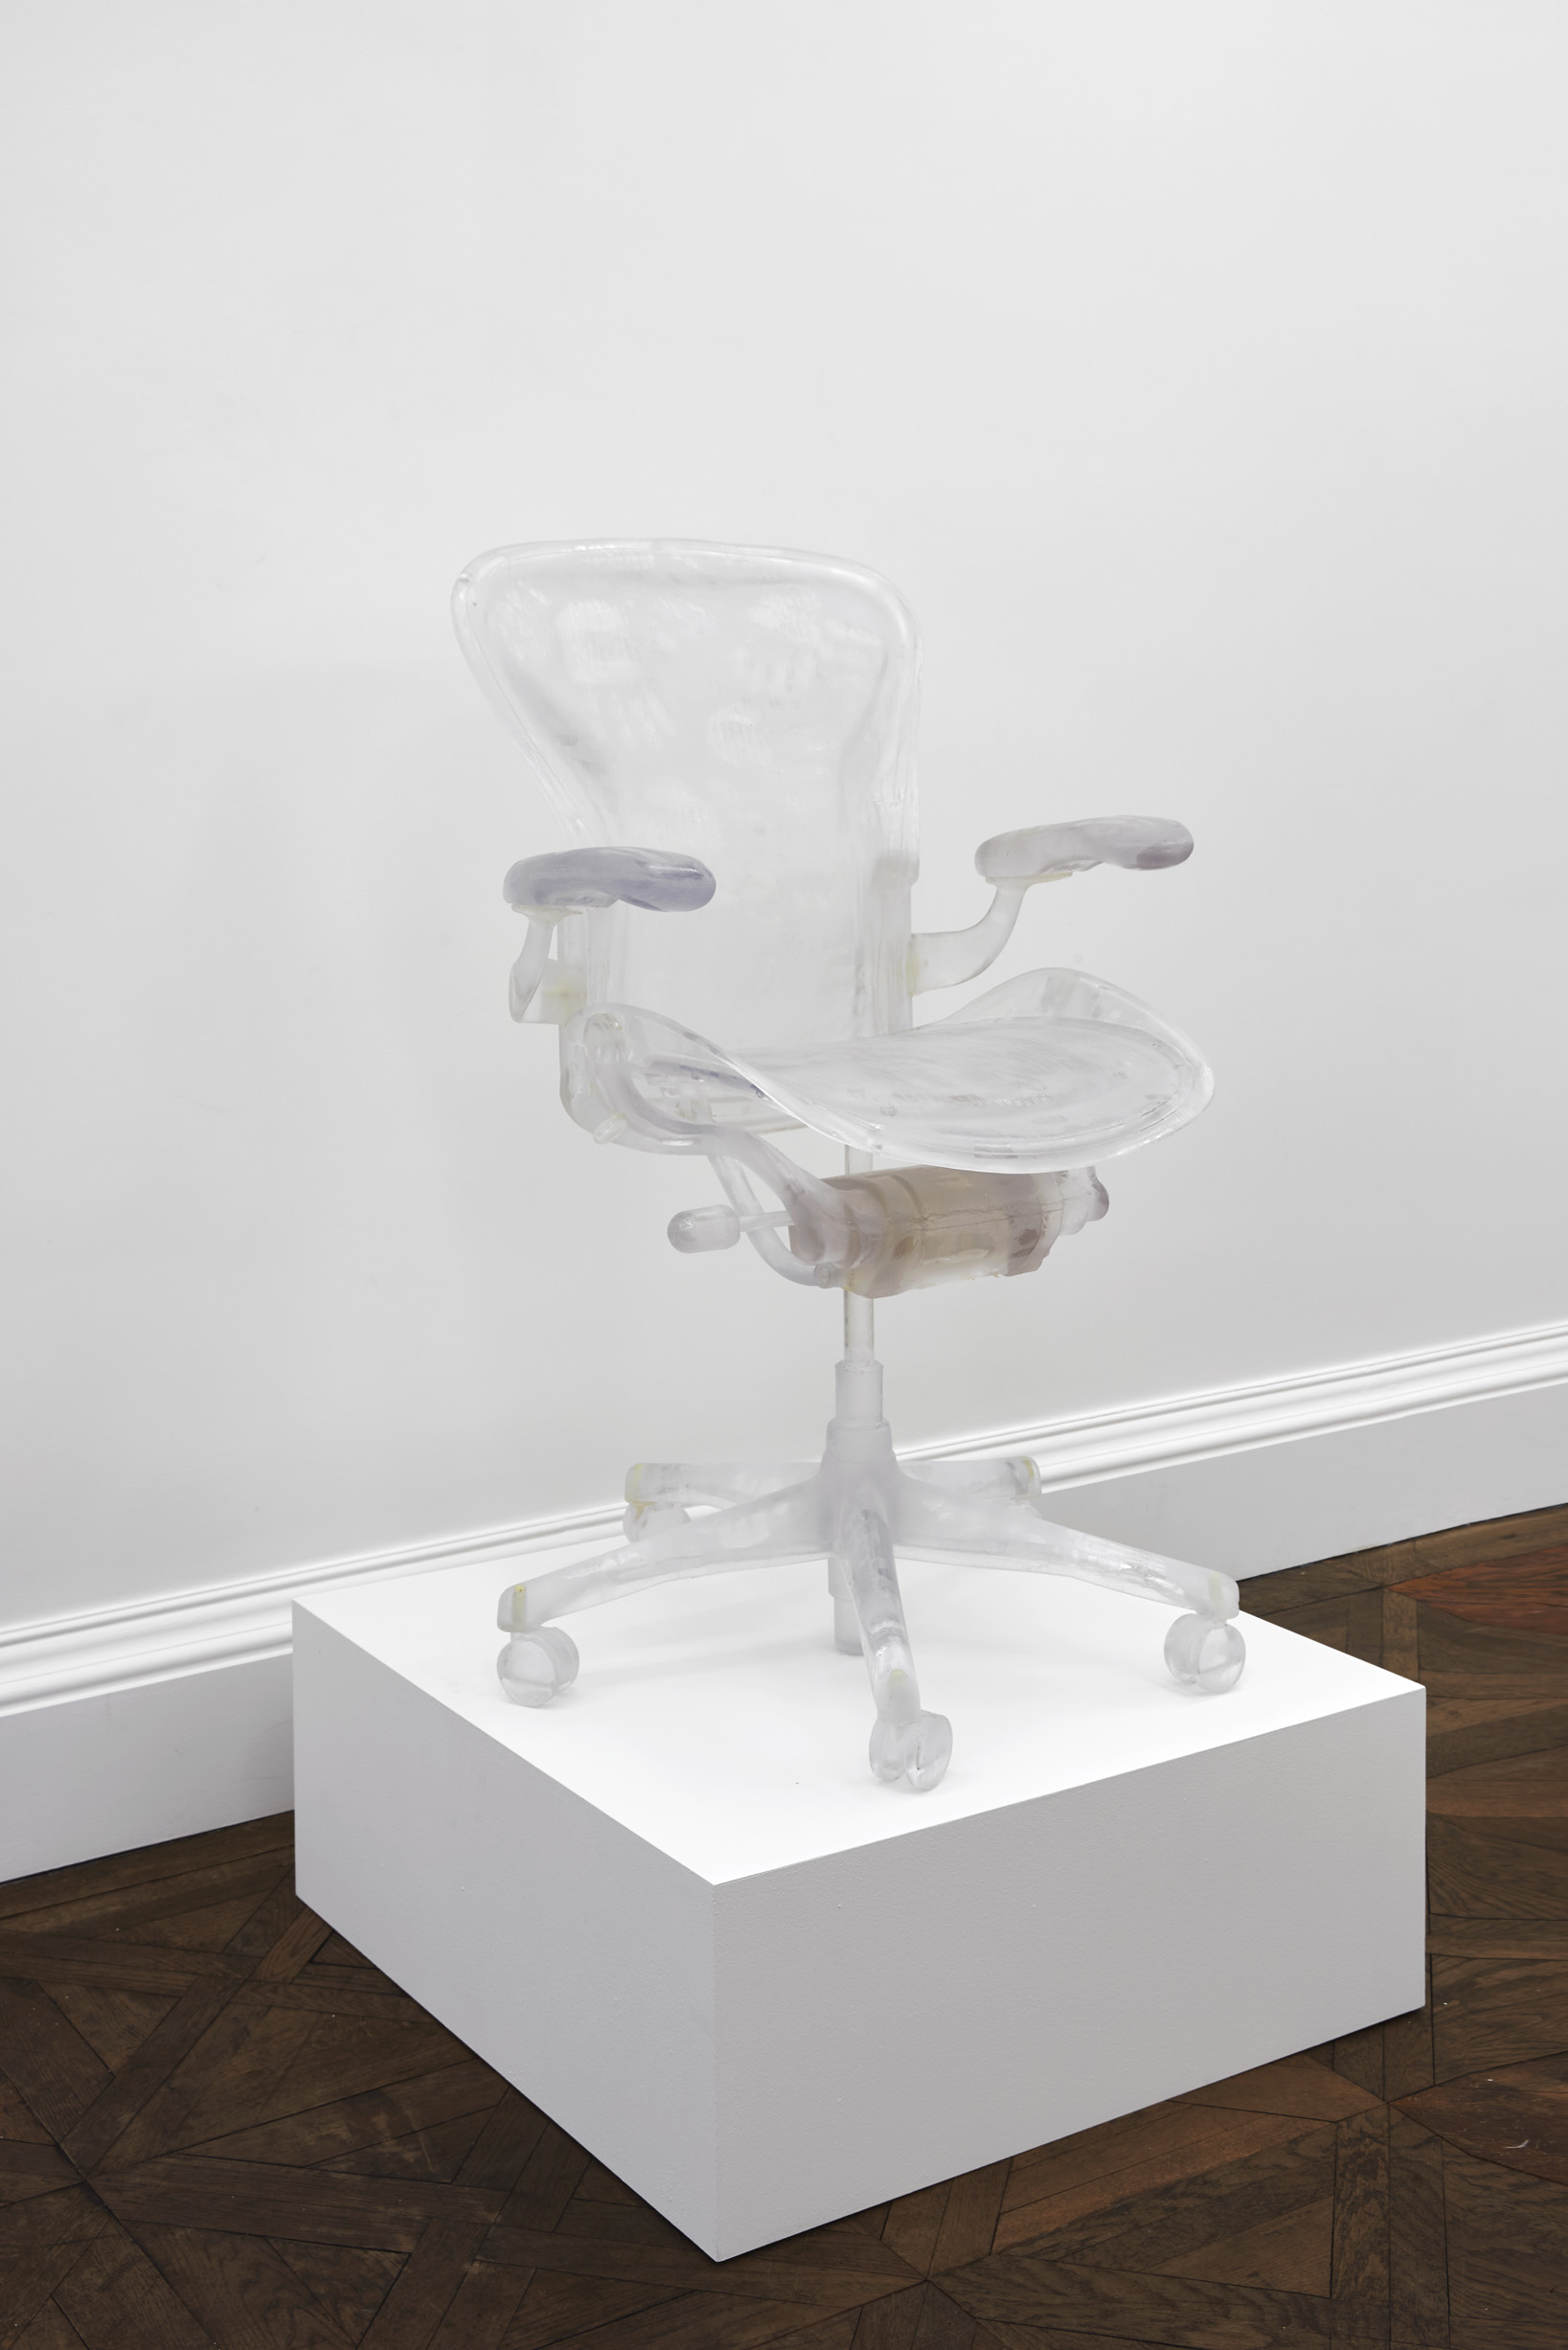 Radiograph No. 5 - Herman Miller Aeron office chair (caressed by Roxman Gatt)   2018   Clear resin   105 x 66 x 66 cm / 41.3 x 25.9 x 25.9 in   Unique